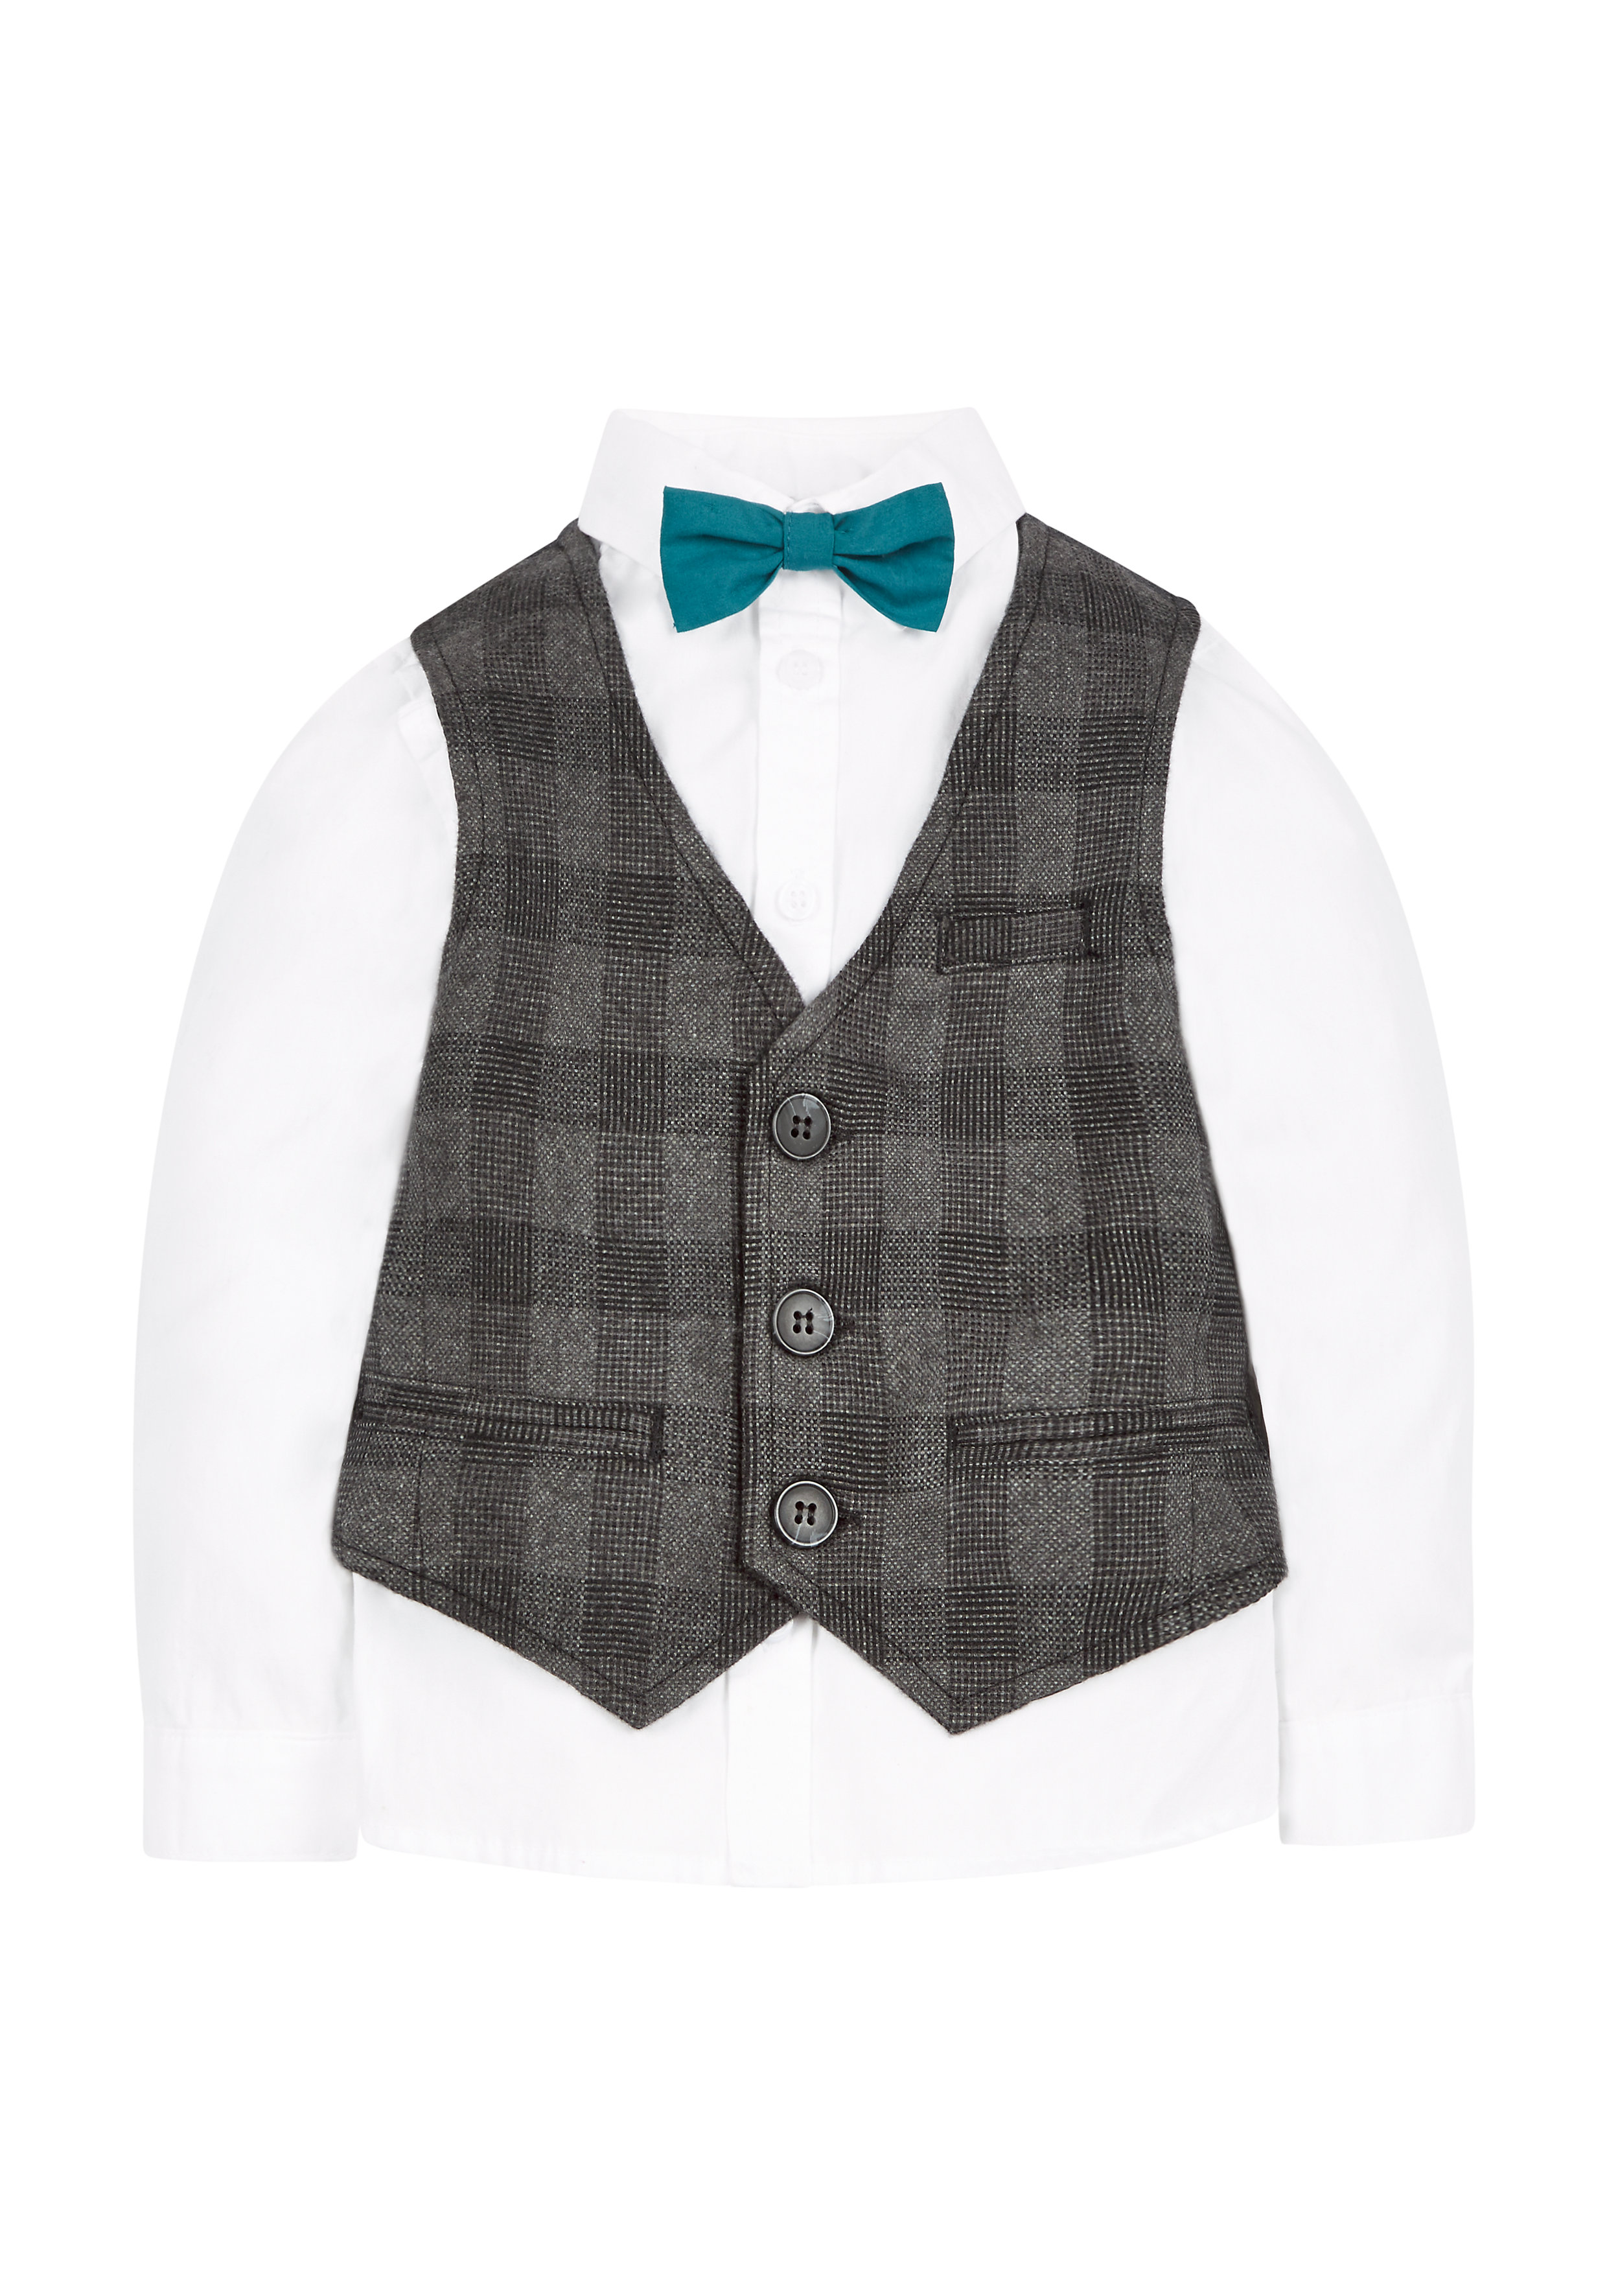 Mothercare | Boys Oxford Shirt With Waistcoat And Bowtie - White